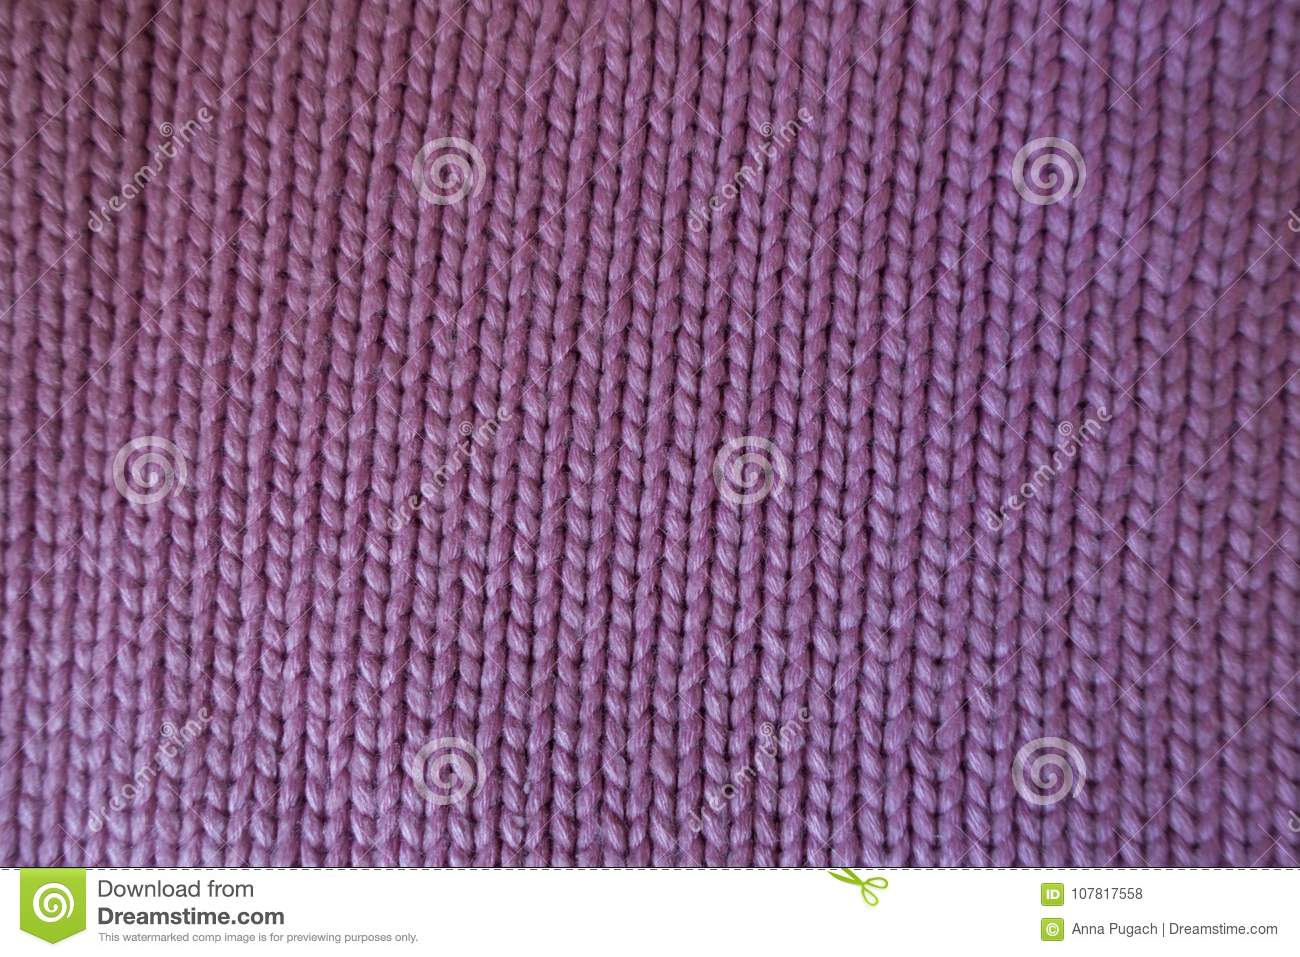 Hand Made Pink Plain Knit Stitch Fabric Stock Photo Image Of